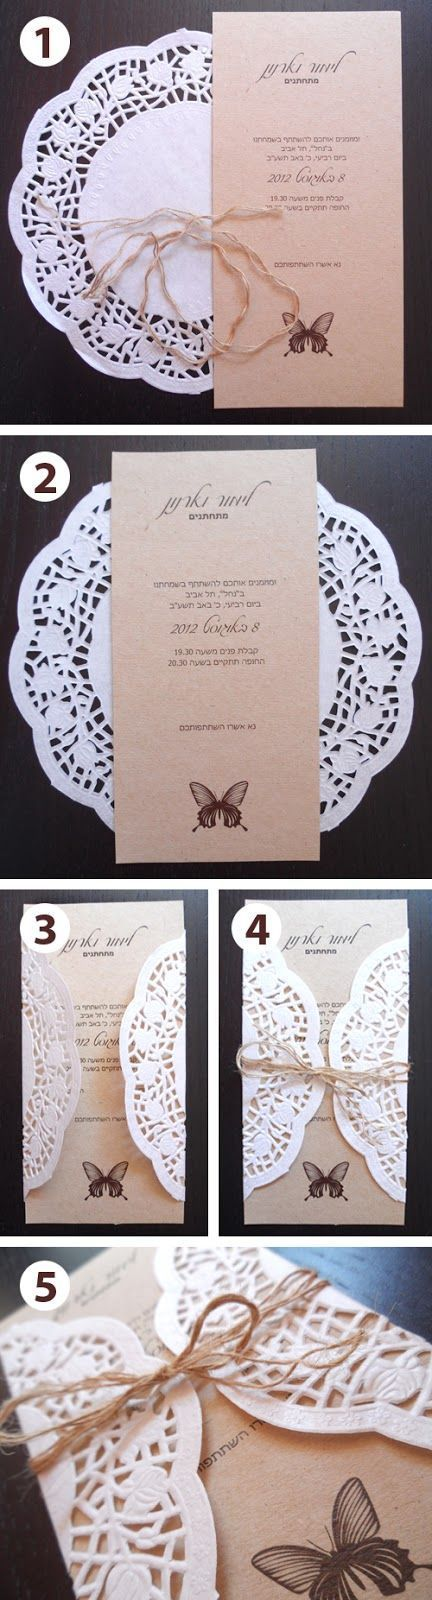 the  best ideas about homemade wedding invitations on, invitation samples